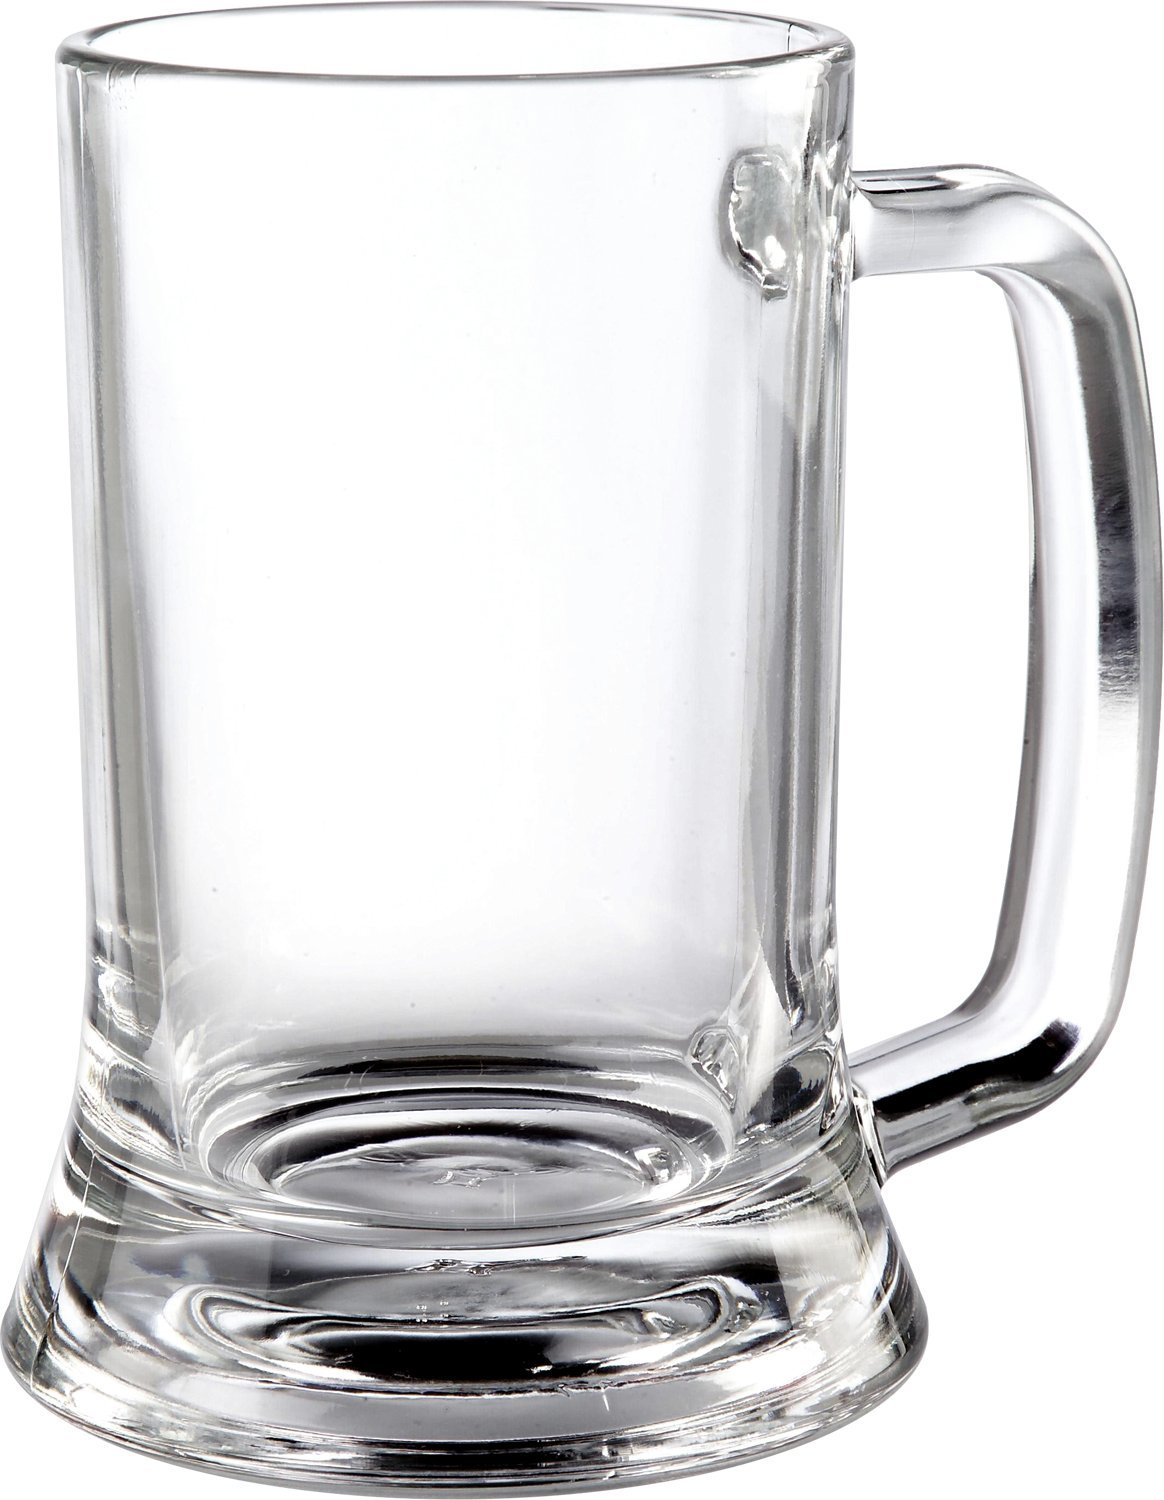 ITI 384 Tankard Beer Glasses, 10-Ounce, 36-Piece, Clear